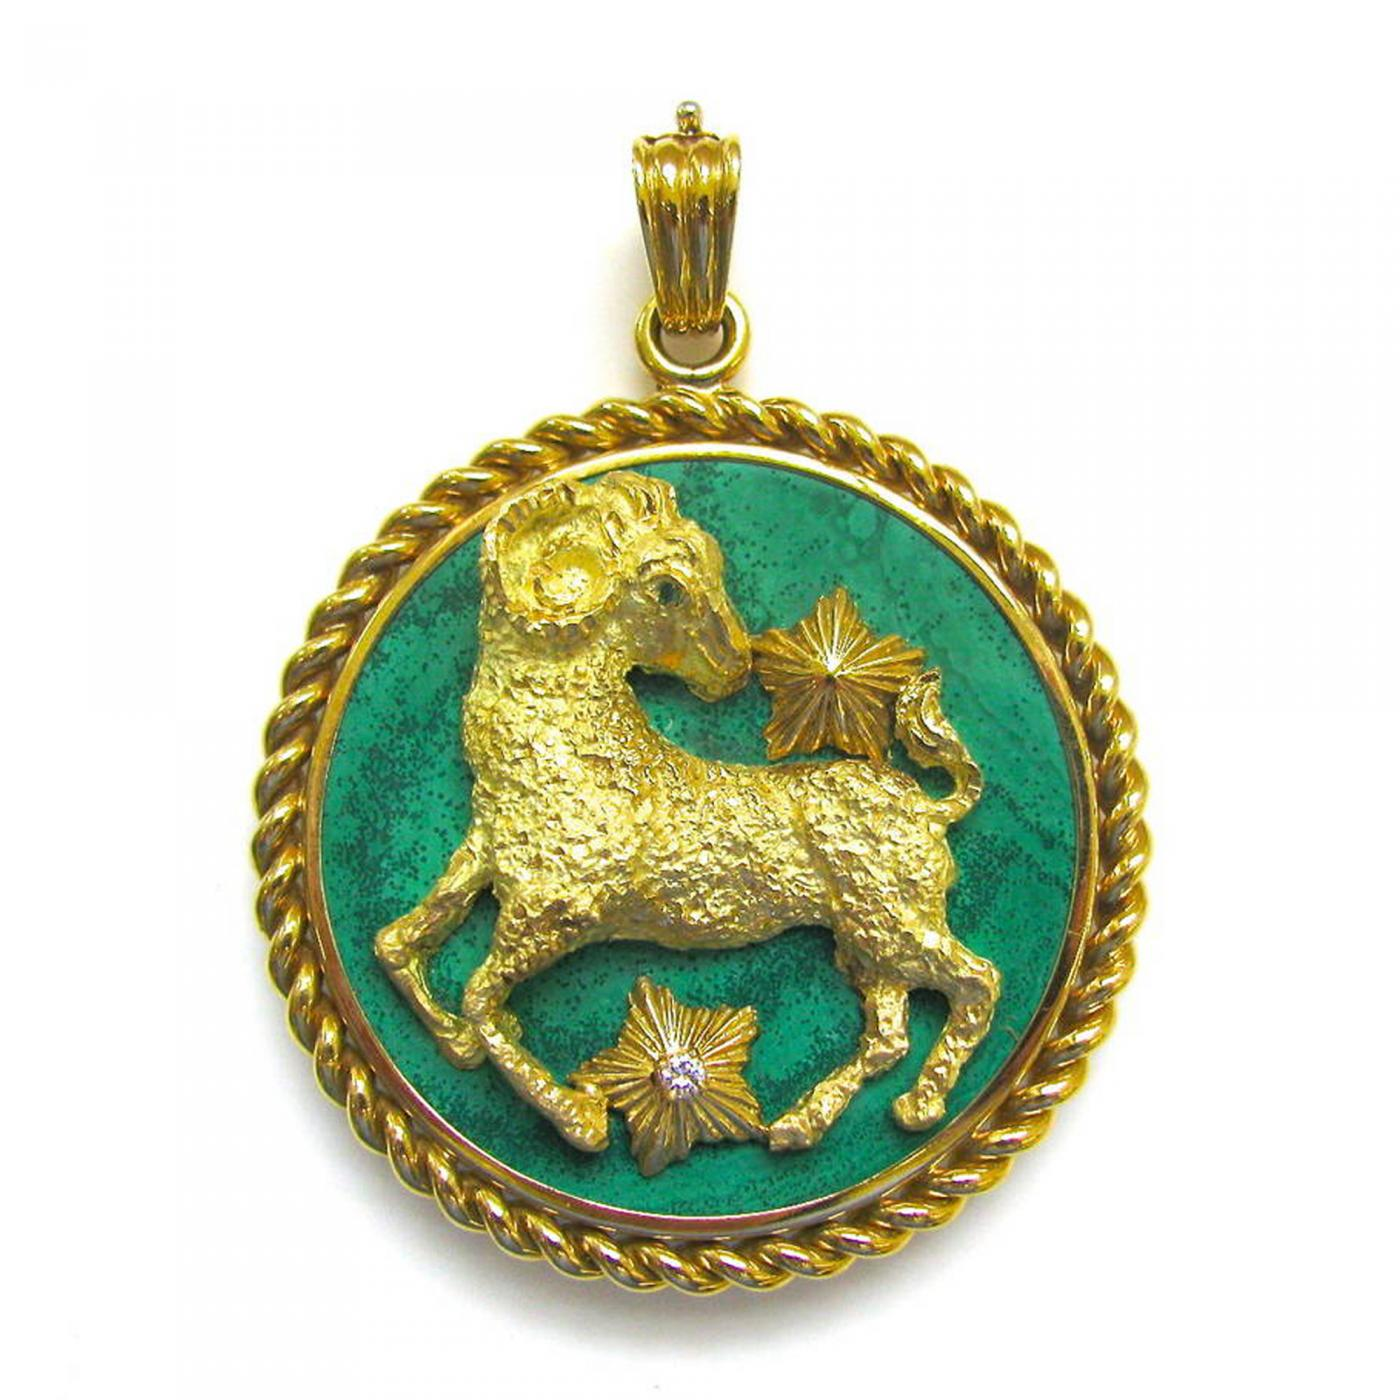 Van cleef and arpels van cleef and arpels malachite zodiac pendant listings jewelry necklaces pendants drop pendant van cleef arpels aloadofball Image collections